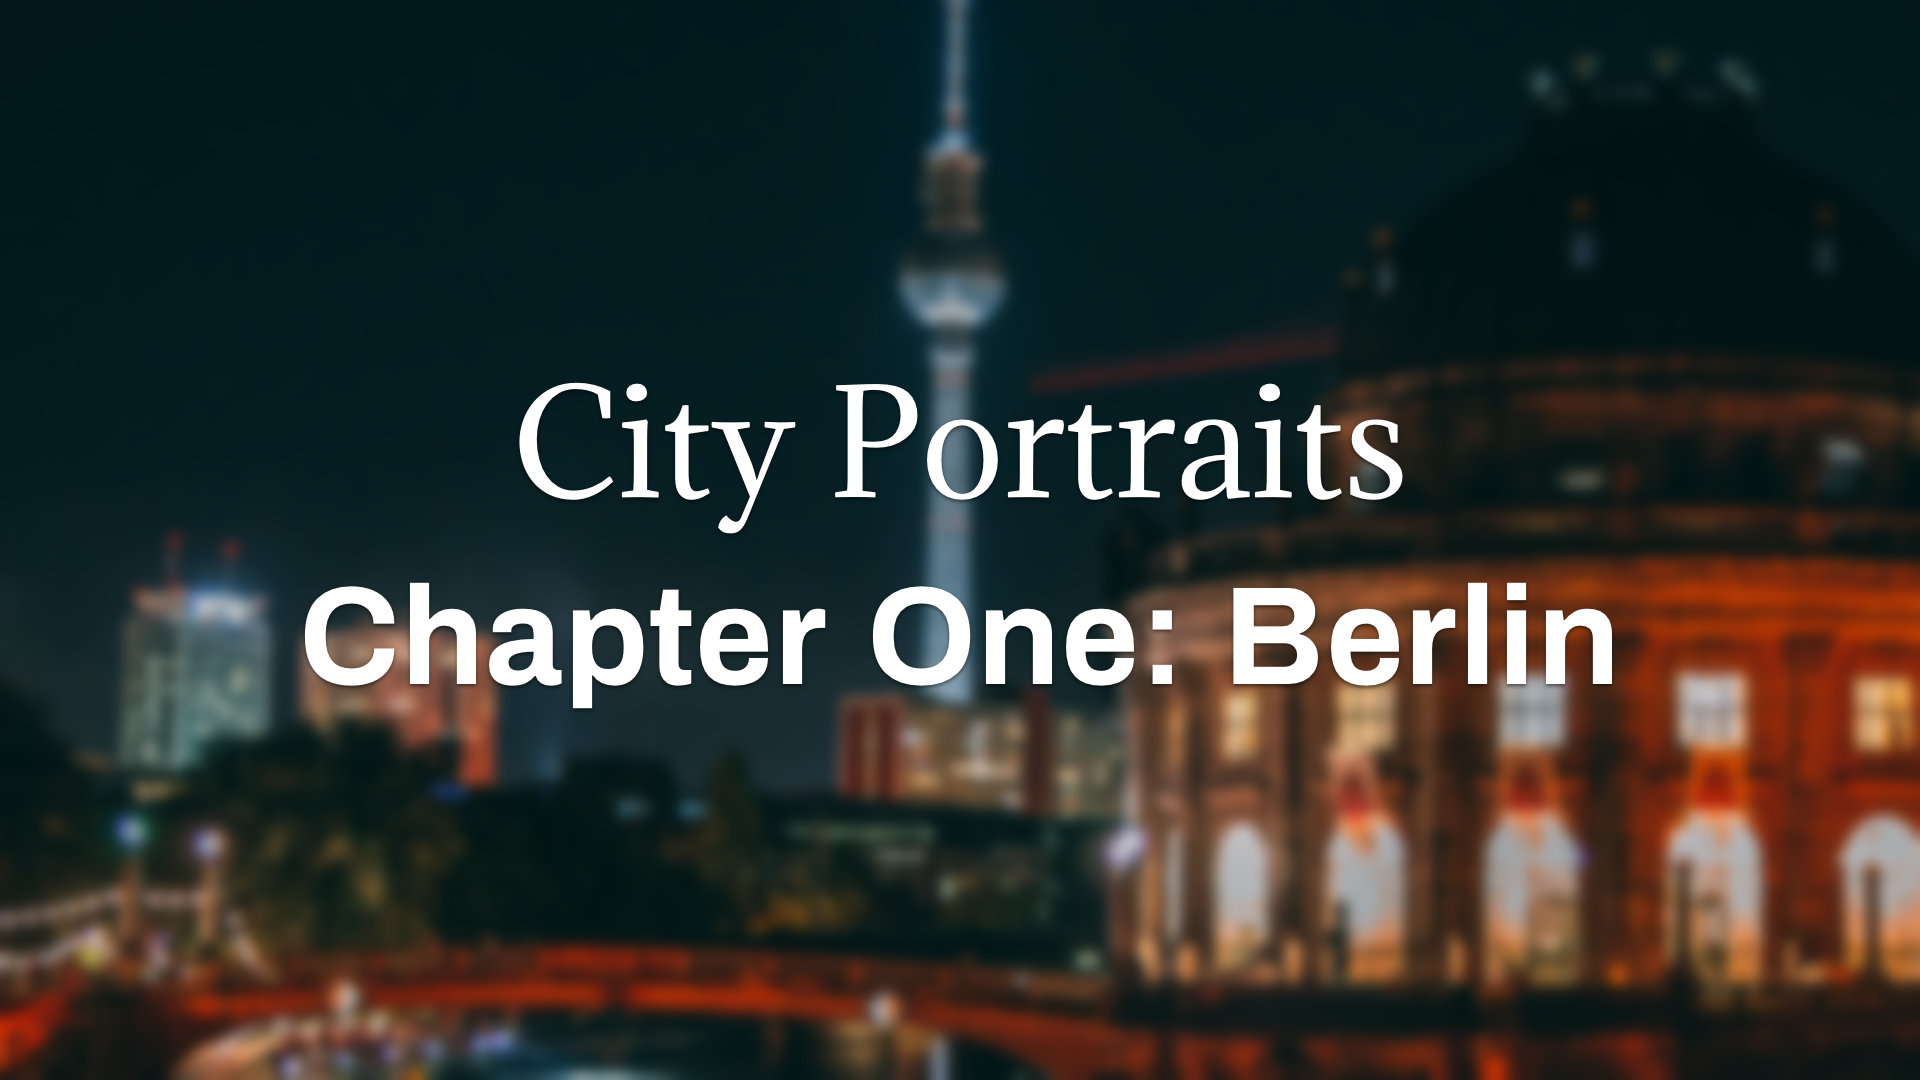 City Portraits Chapter One - Berlin